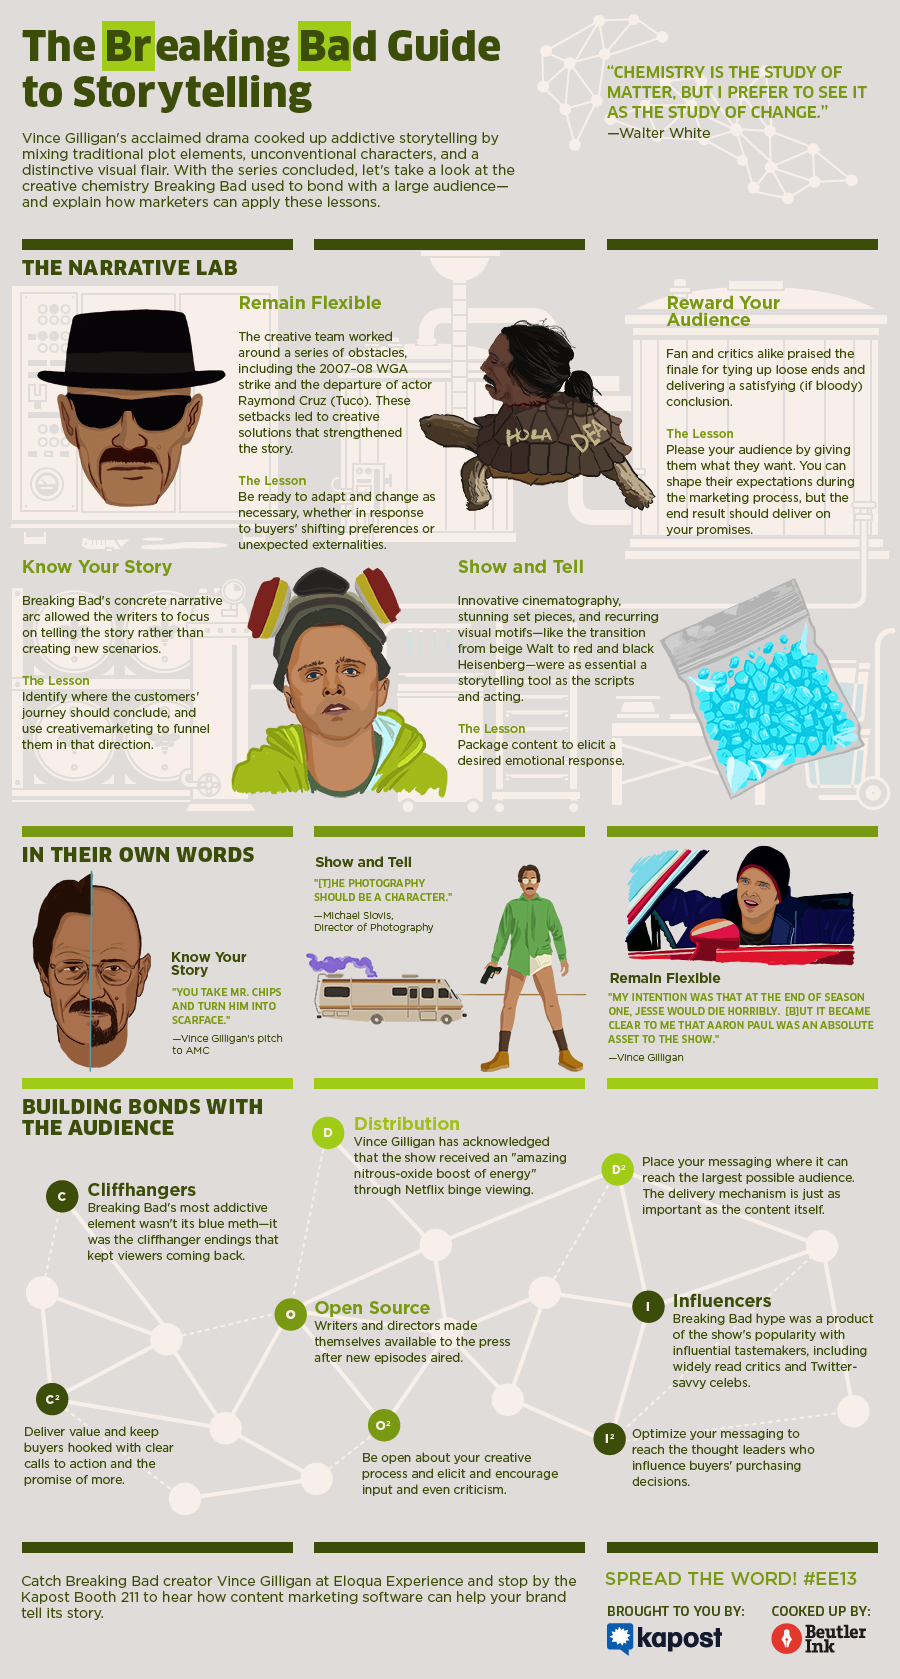 the-breaking-bad-guide-to-storytelling_52653991524bf